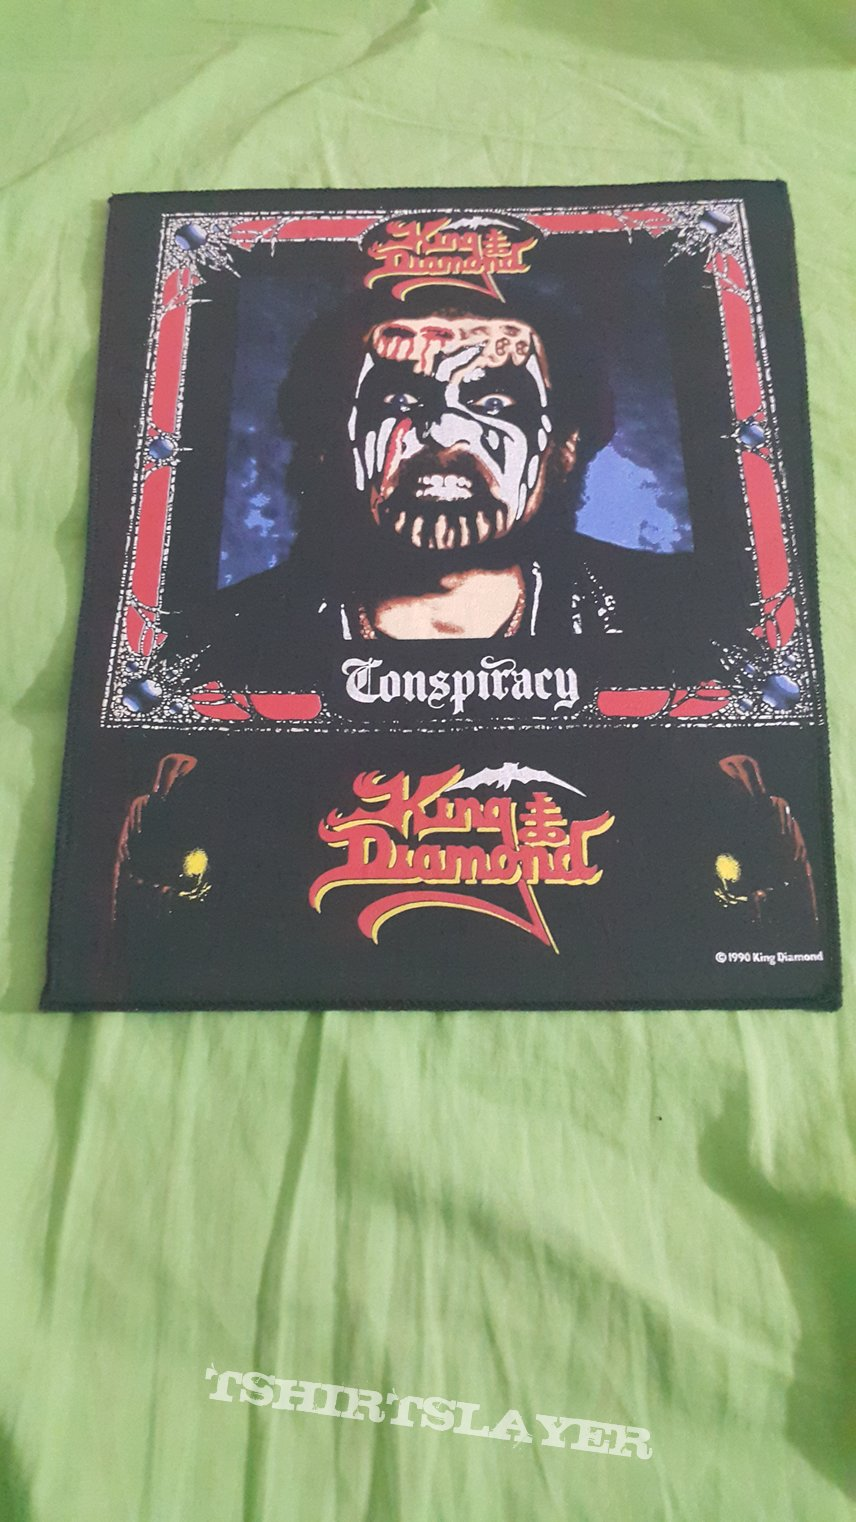 King Diamond - Conspiracy Official Backpatch